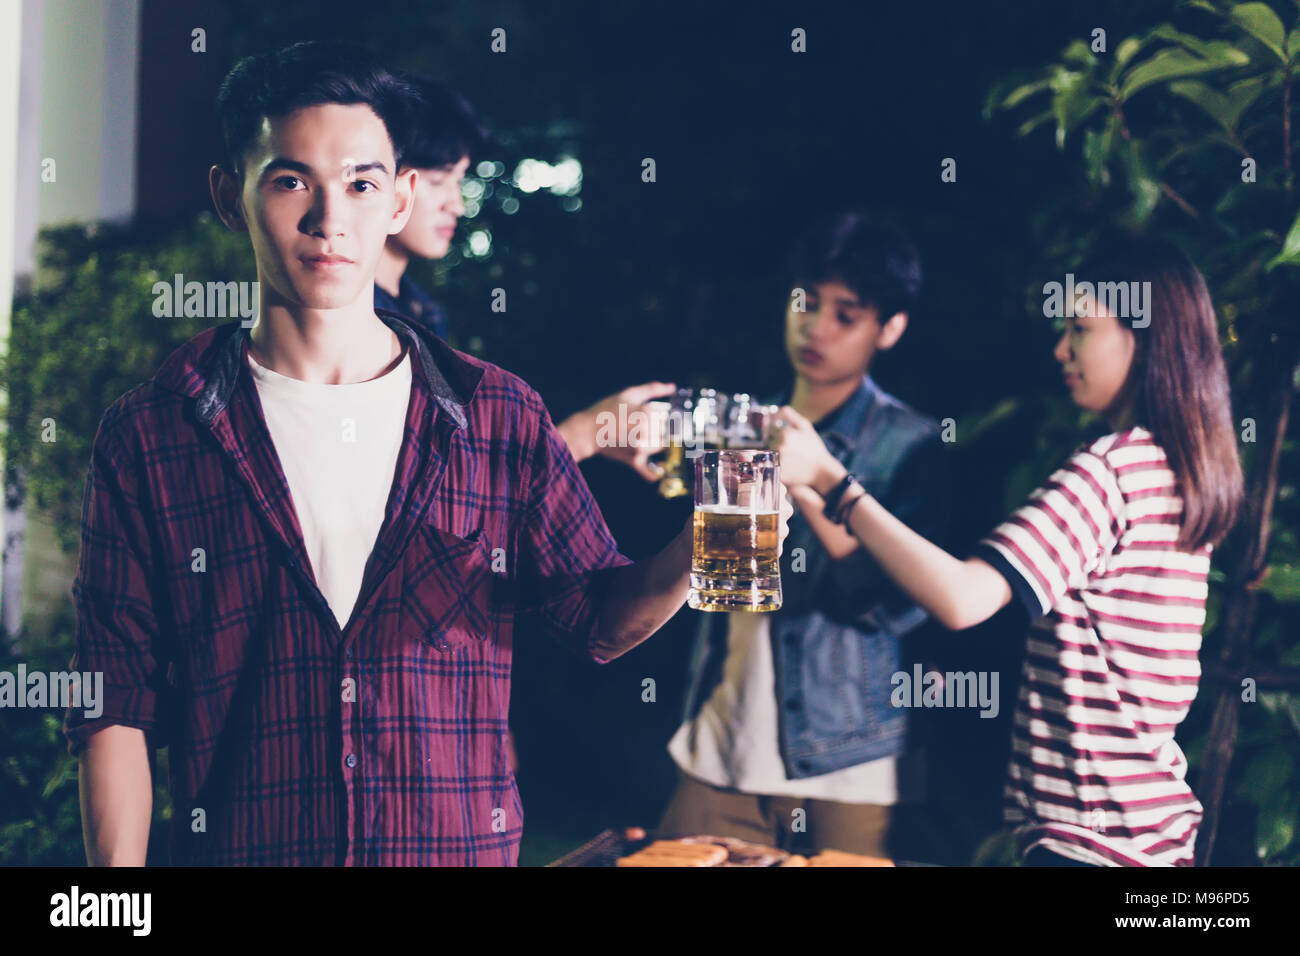 Asian group of friends having outdoor garden barbecue laughing with alcoholic beer drinks on night Stock Photo